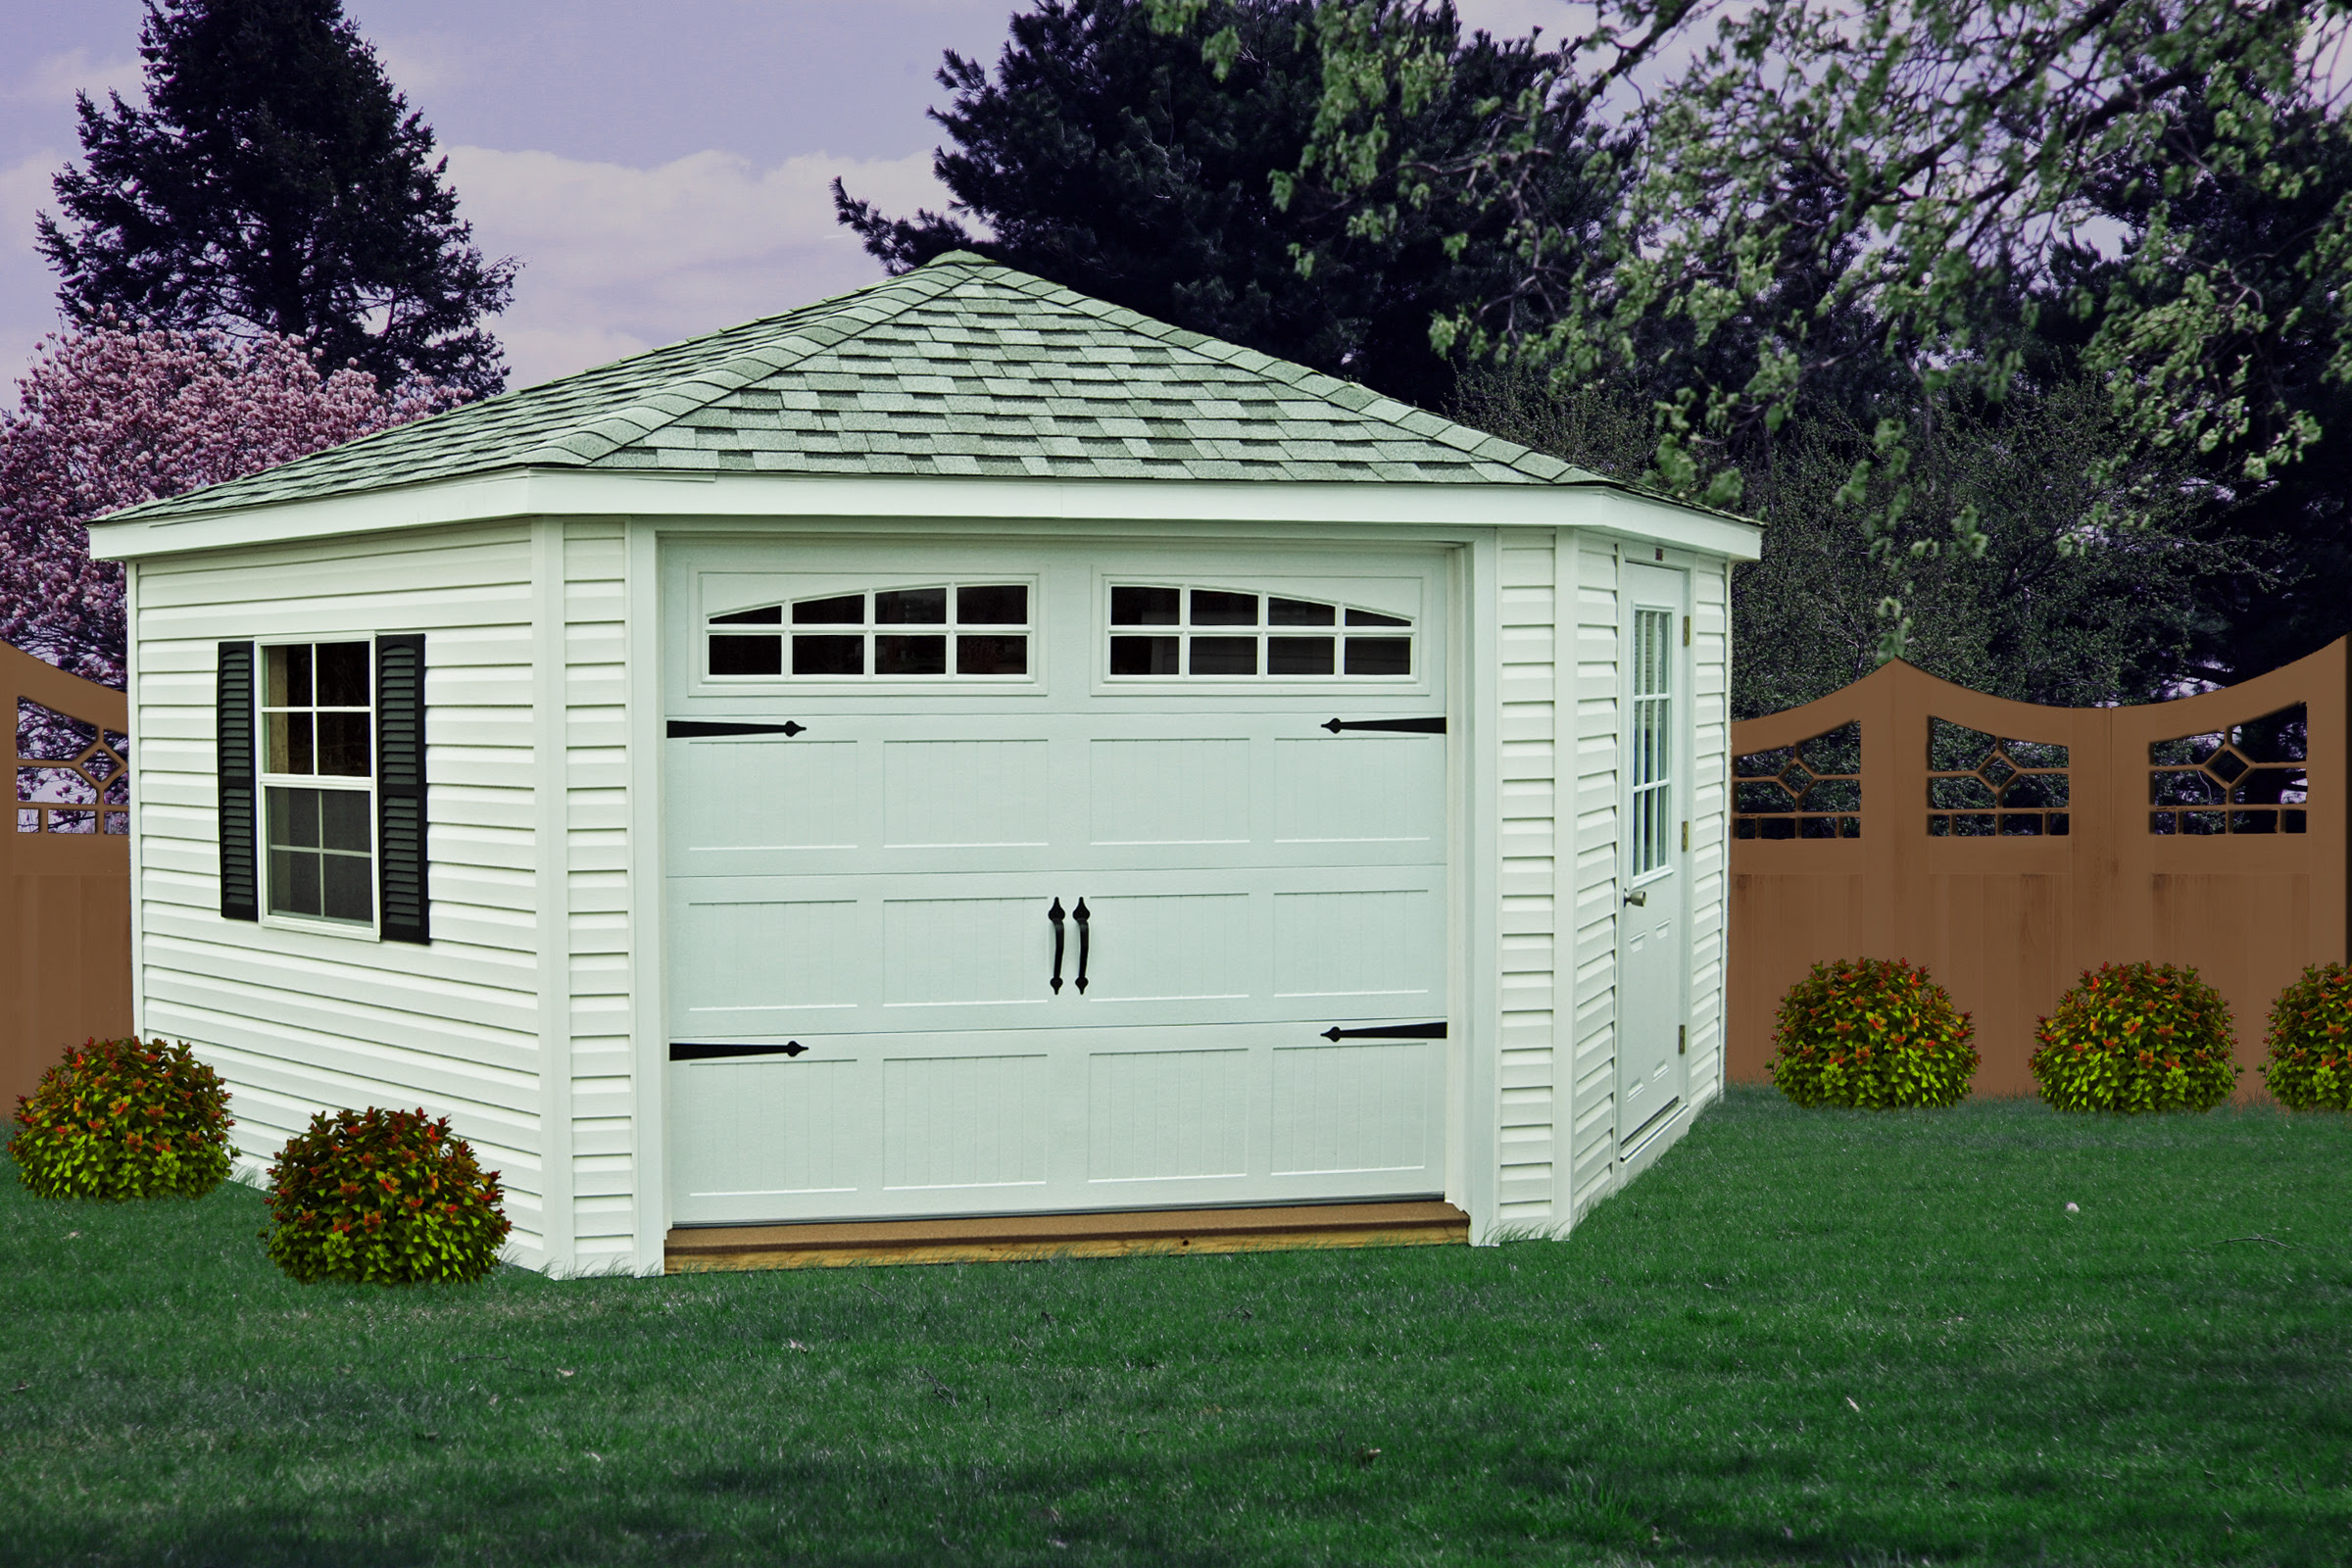 Next Five sided garden shed plans